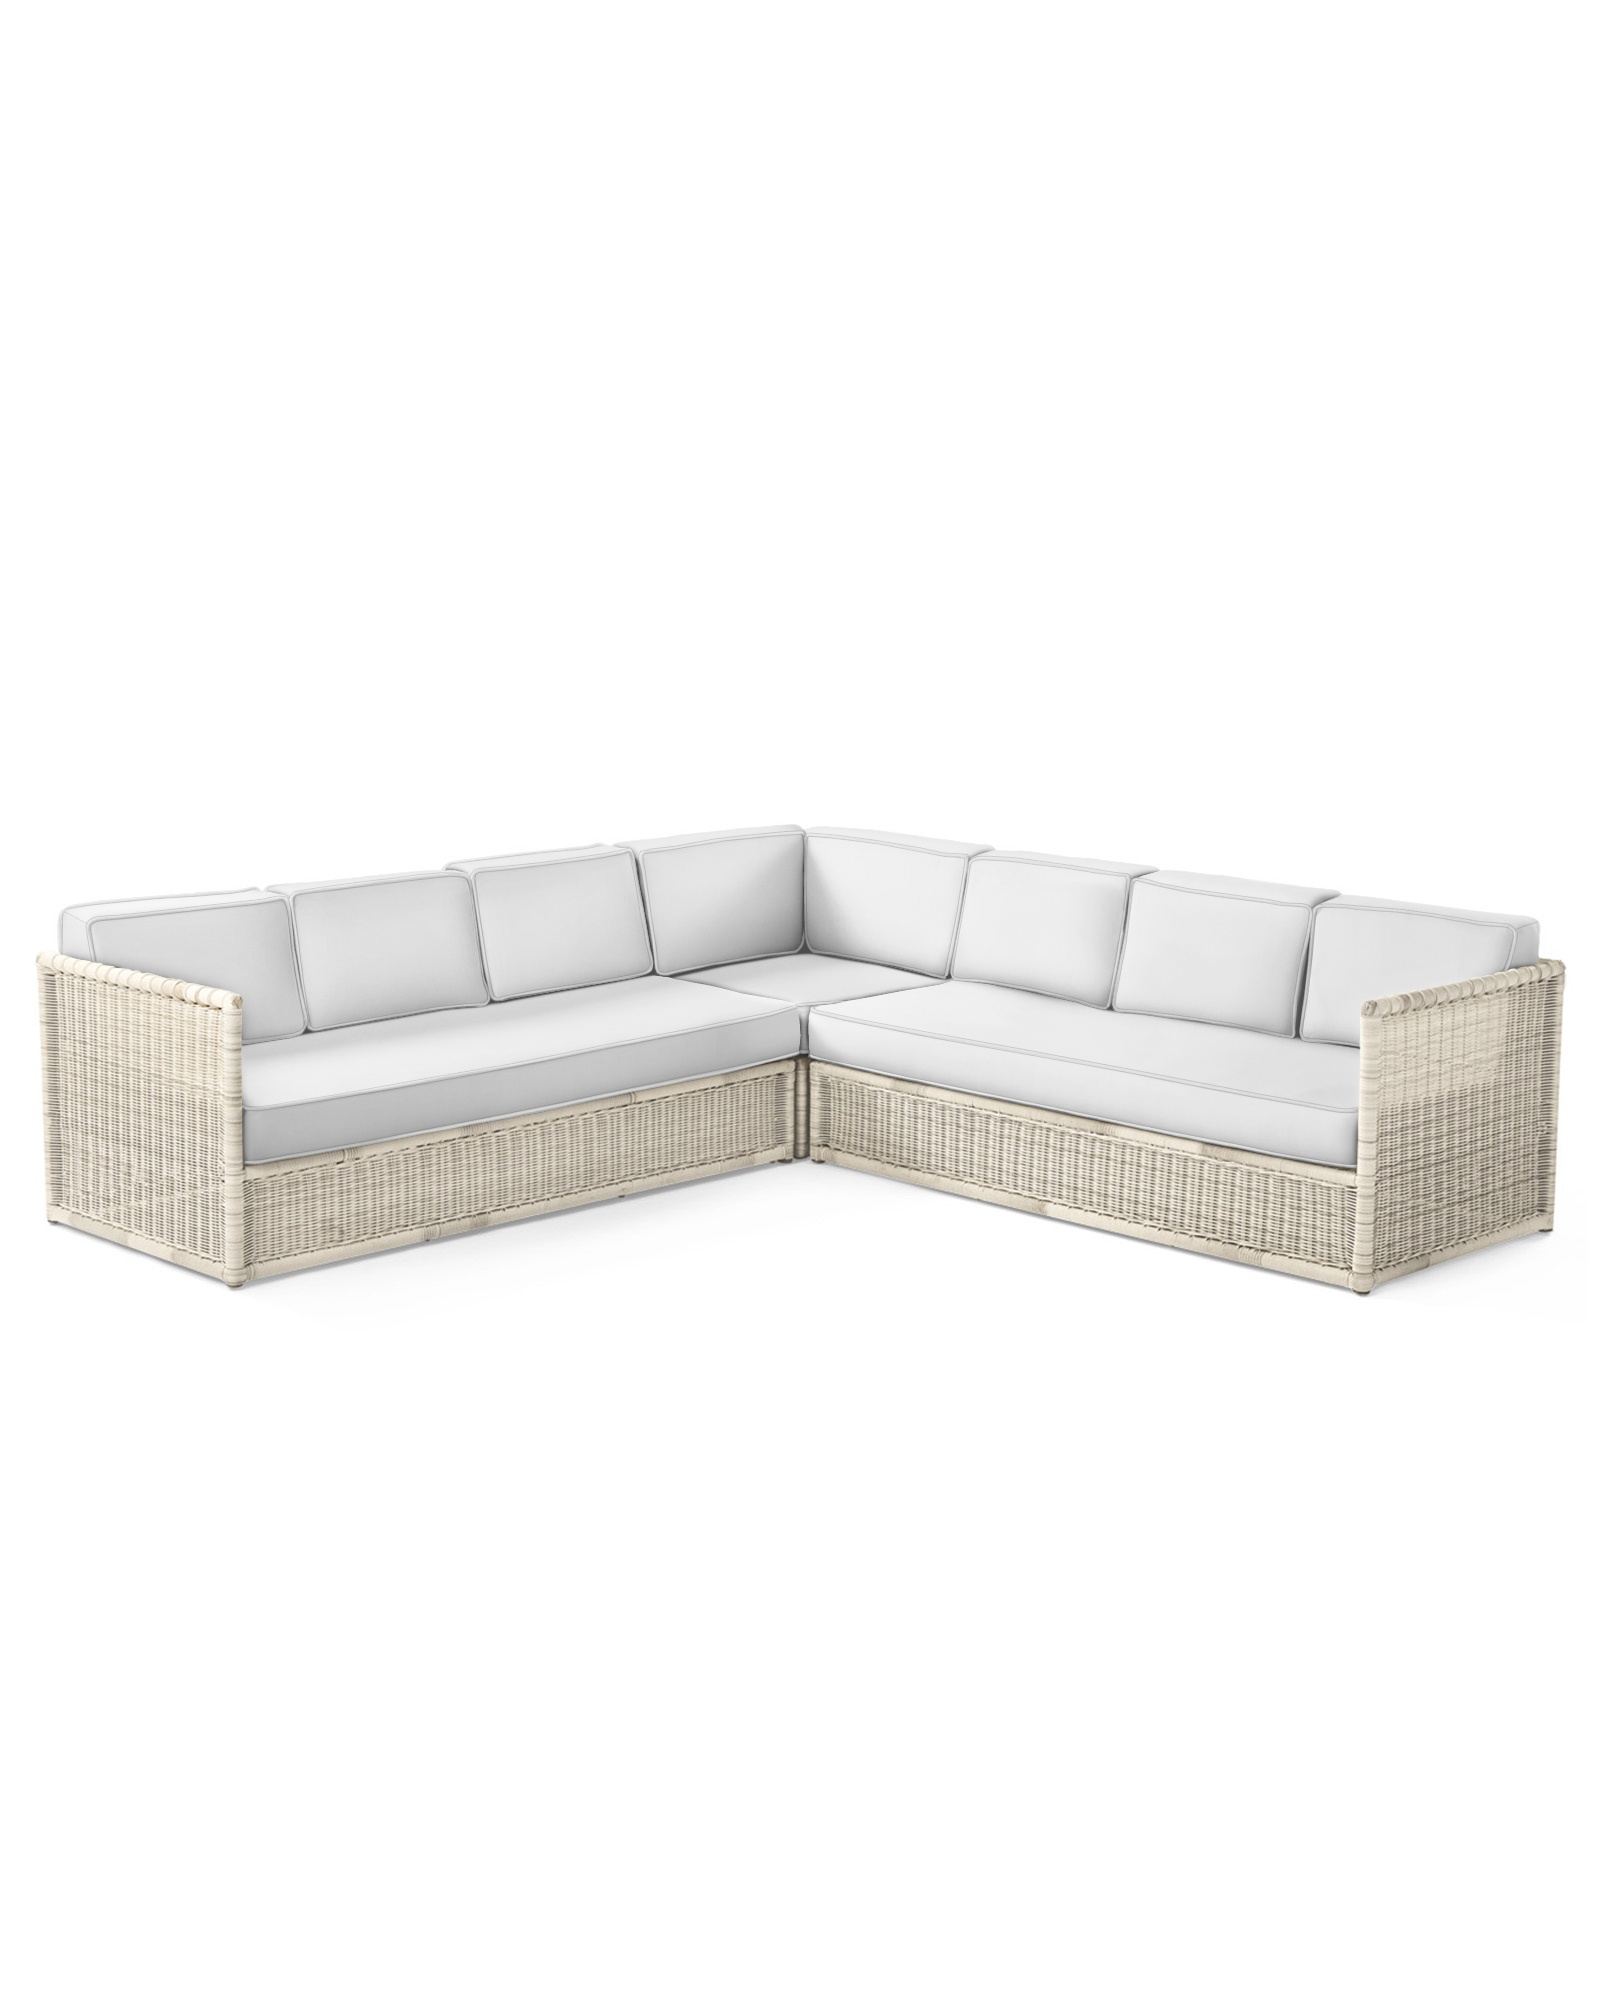 Cushion Cover for Pacifica Corner Sectional, Perennials Basketweave White